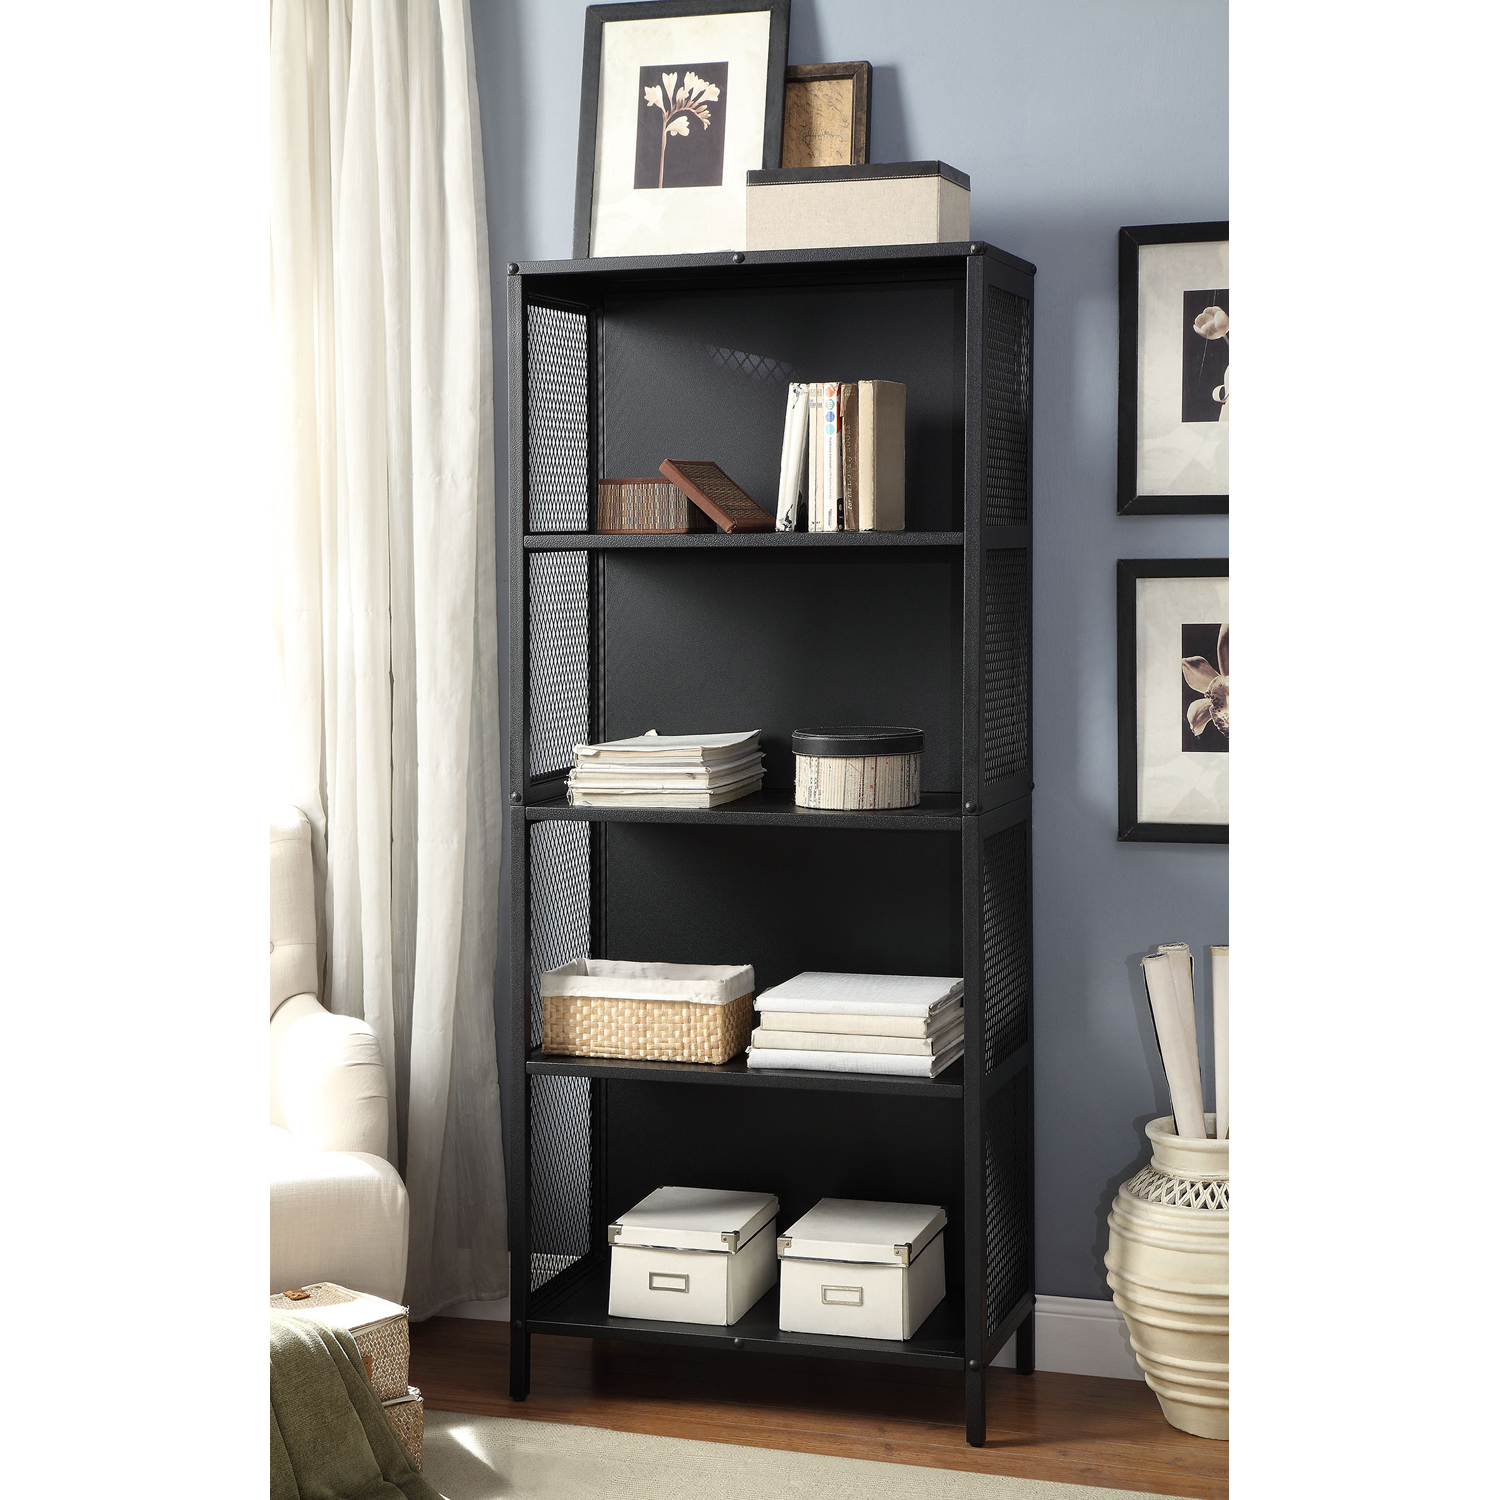 Better Homes and Gardens Industrial Bookcase